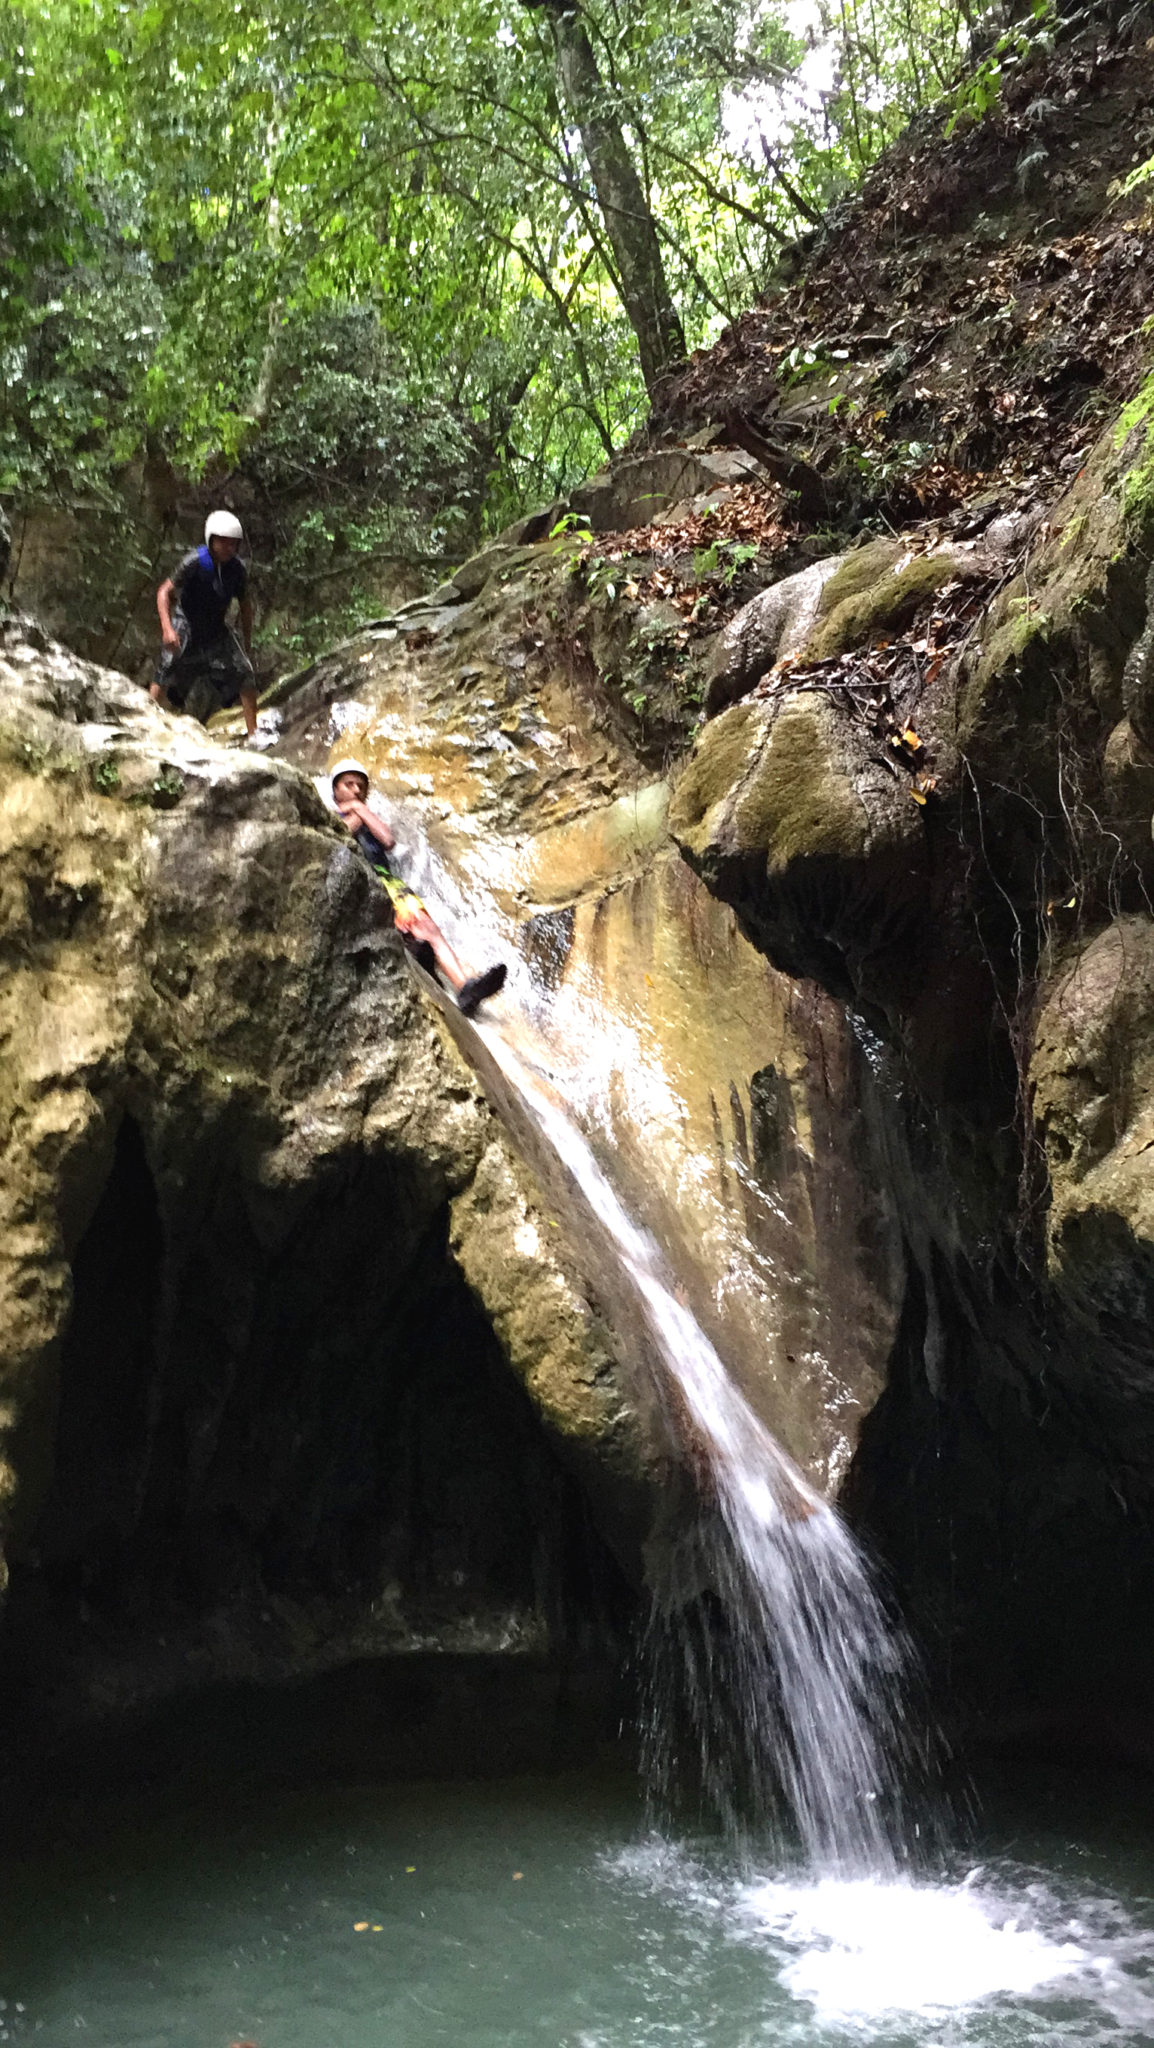 Republique_dominicaine_damajagua_waterfall